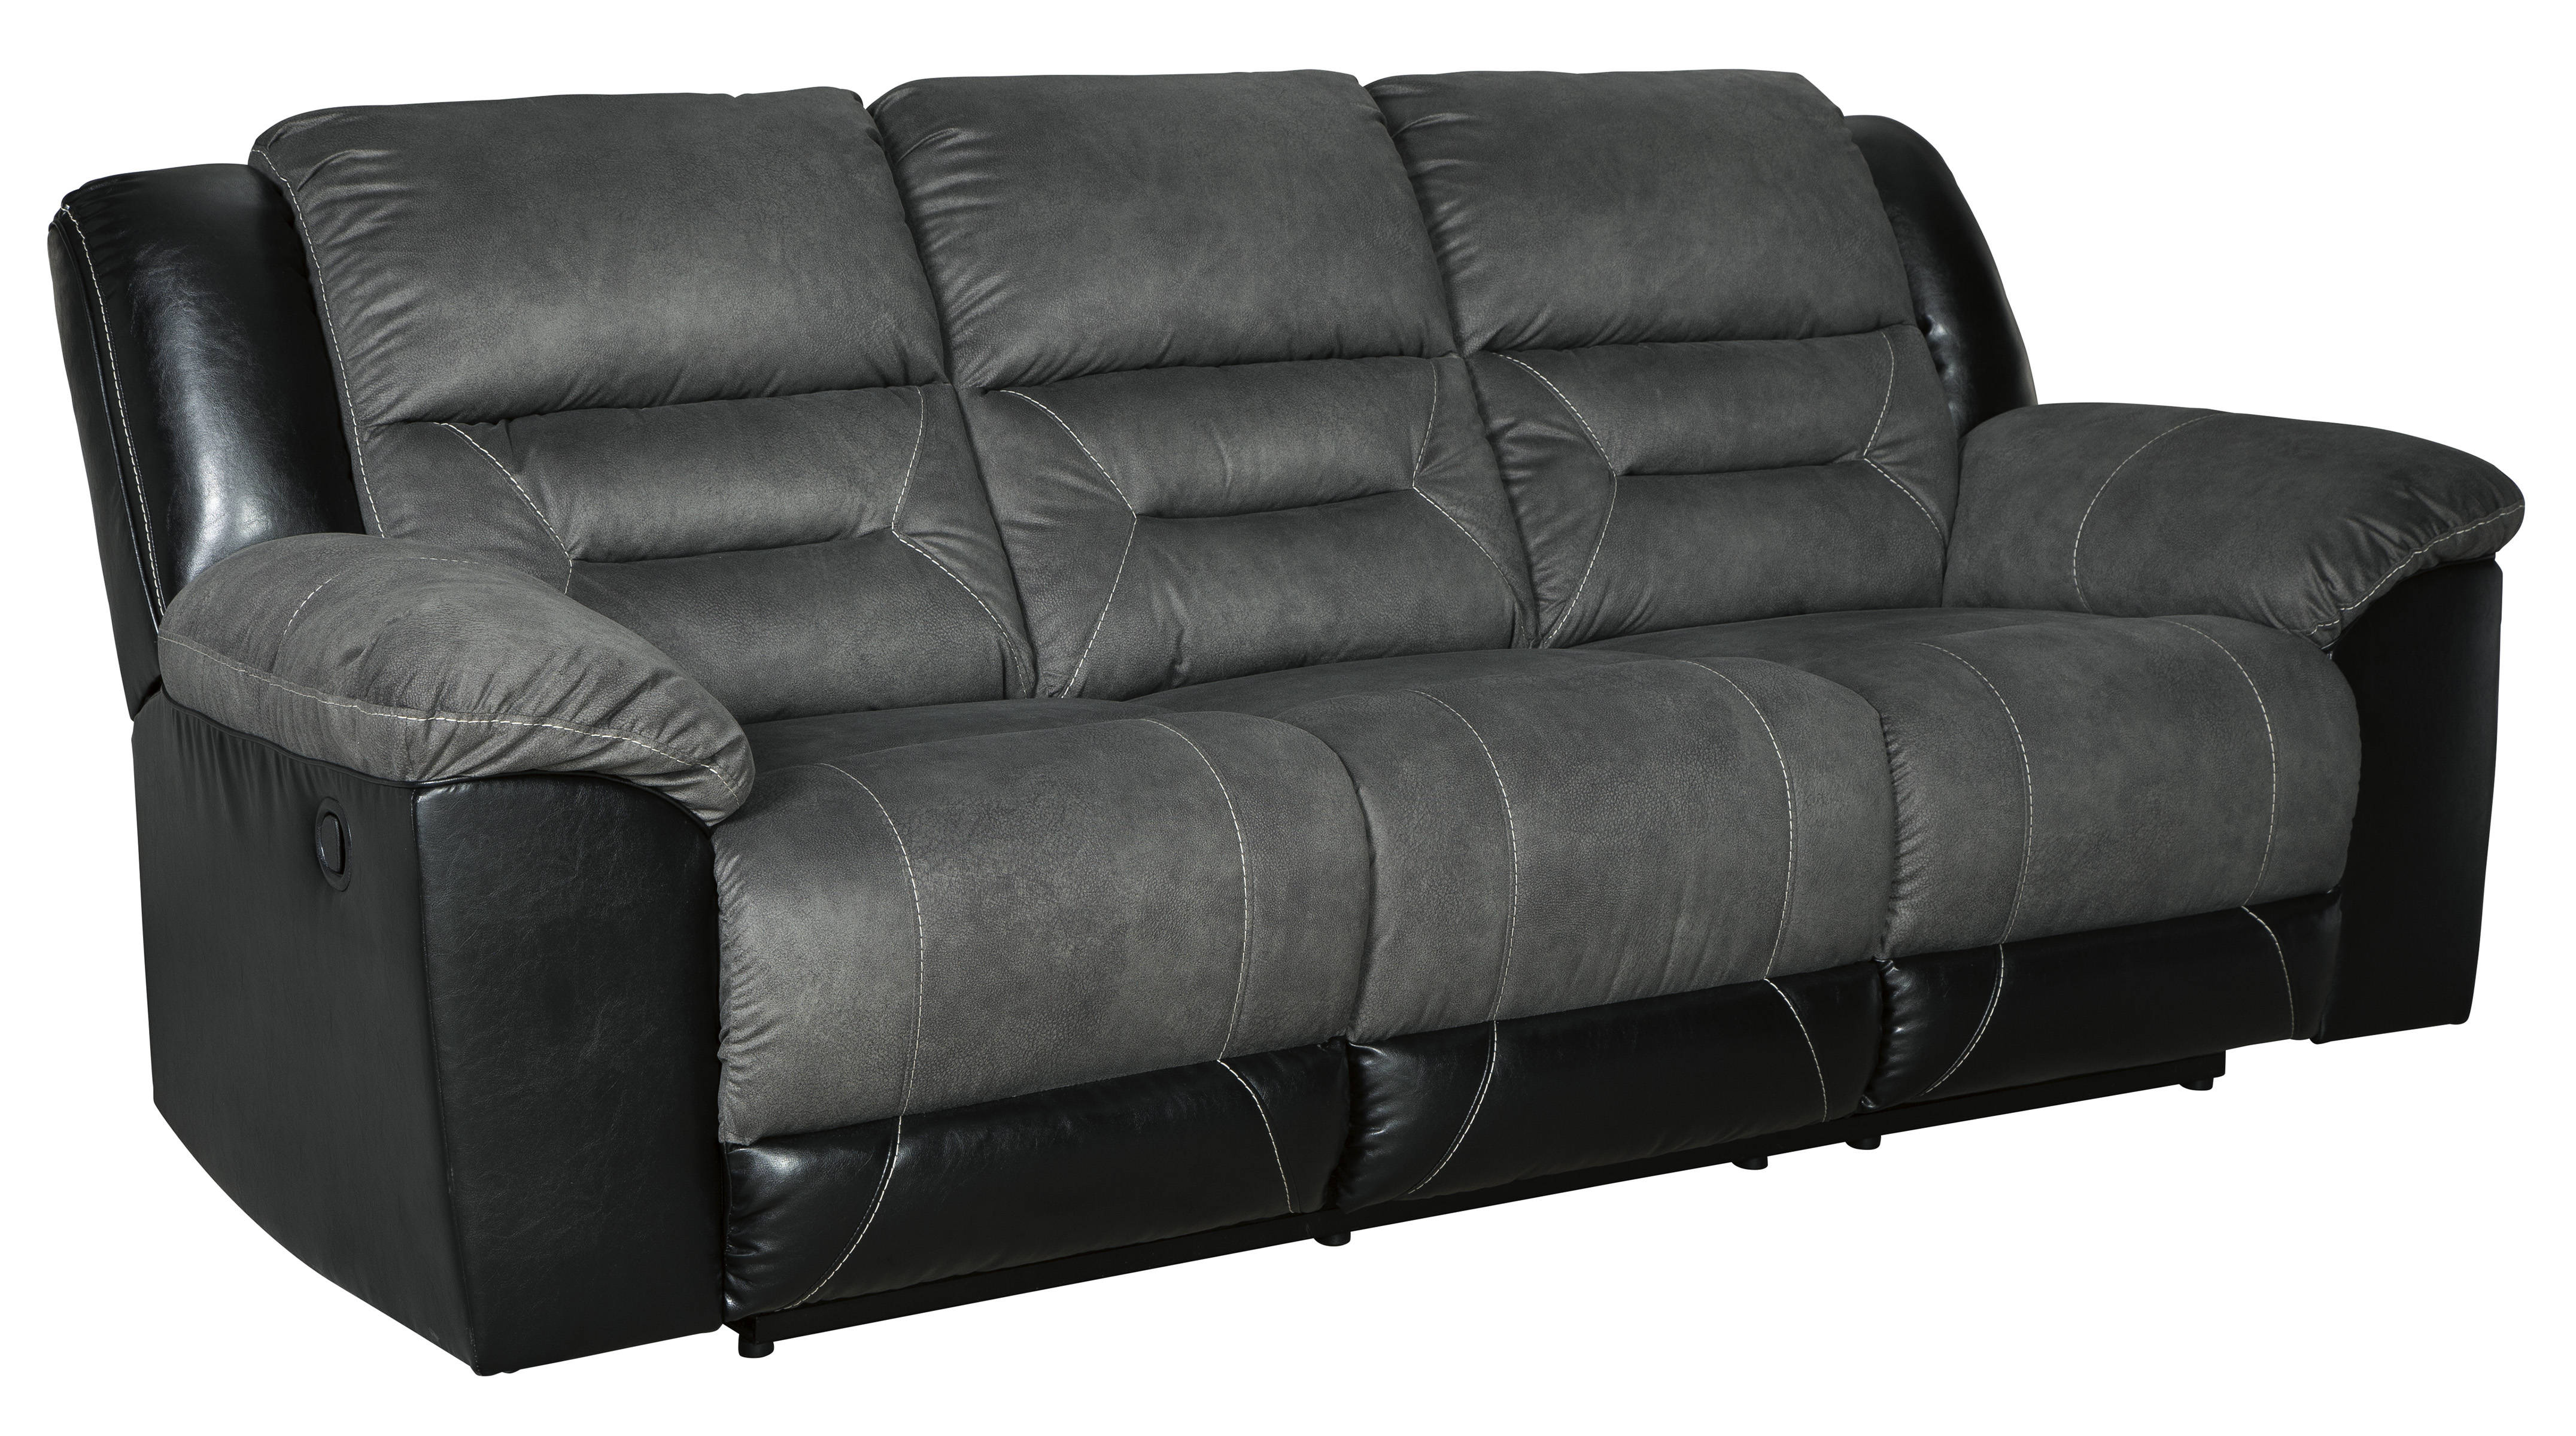 Awe Inspiring Ashley Furniture Earhart Slate Reclining Sofa Home Interior And Landscaping Mentranervesignezvosmurscom